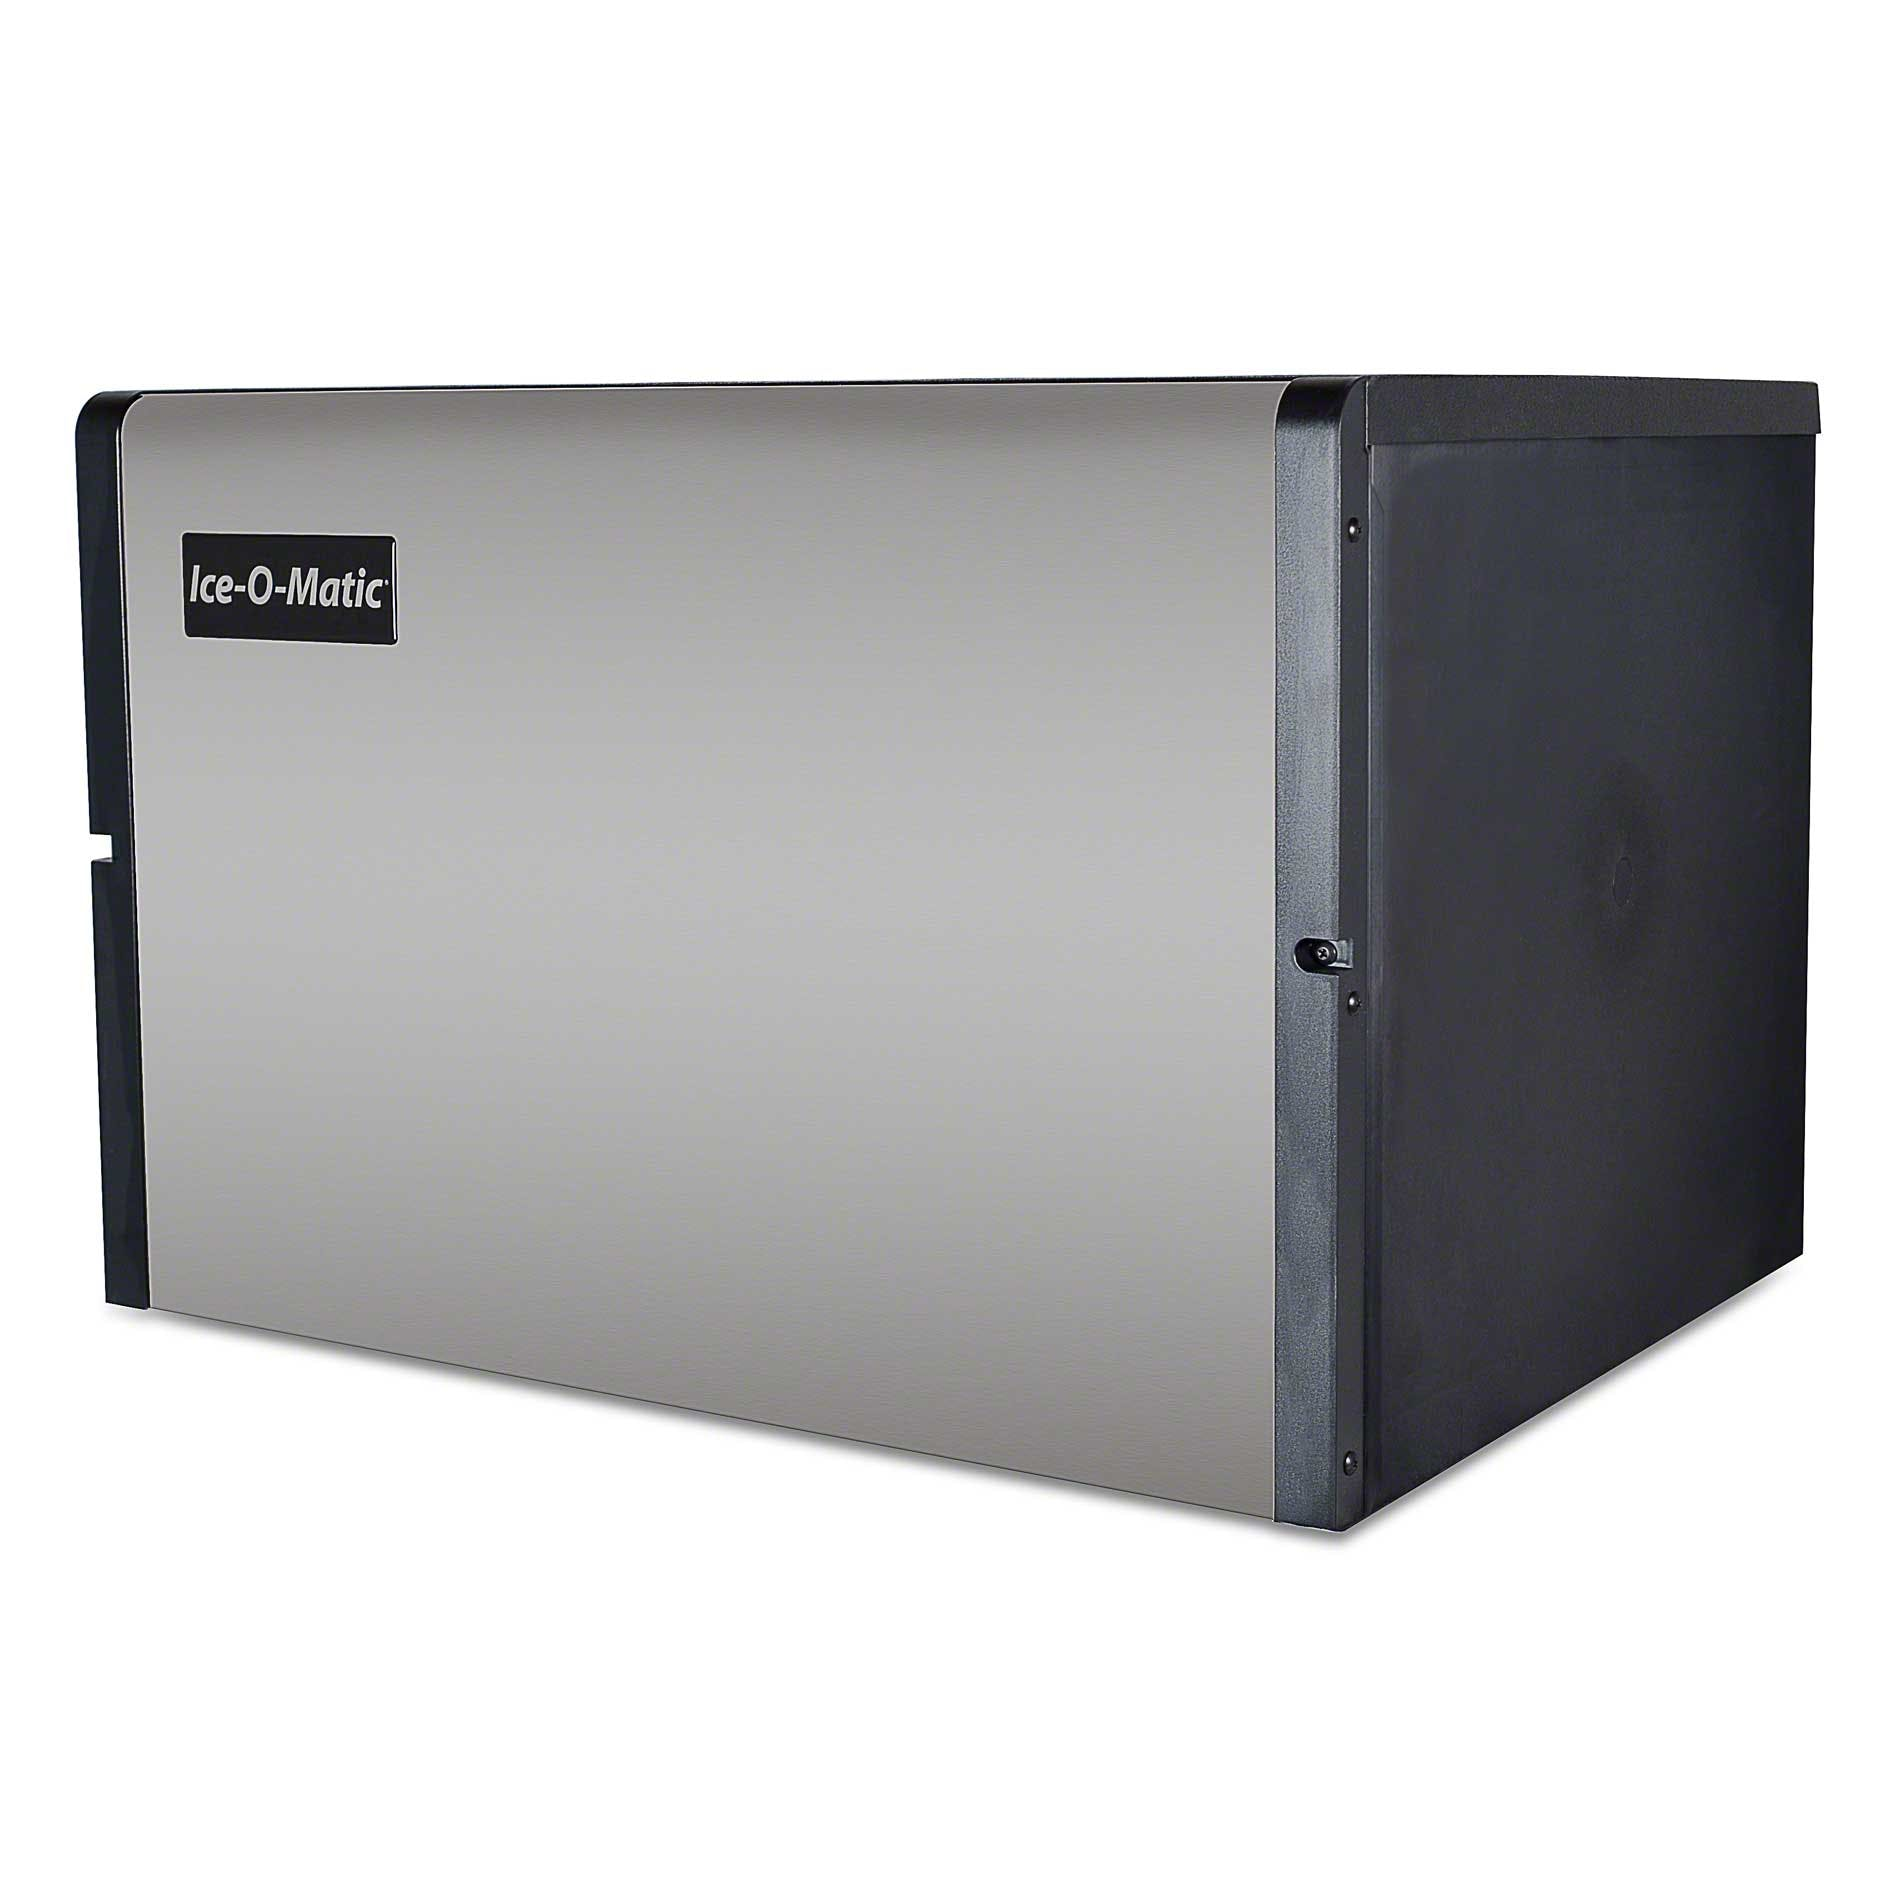 Ice-O-Matic - ICE0606FR 605 lb Full Cube Ice Machine - sold by Food Service Warehouse